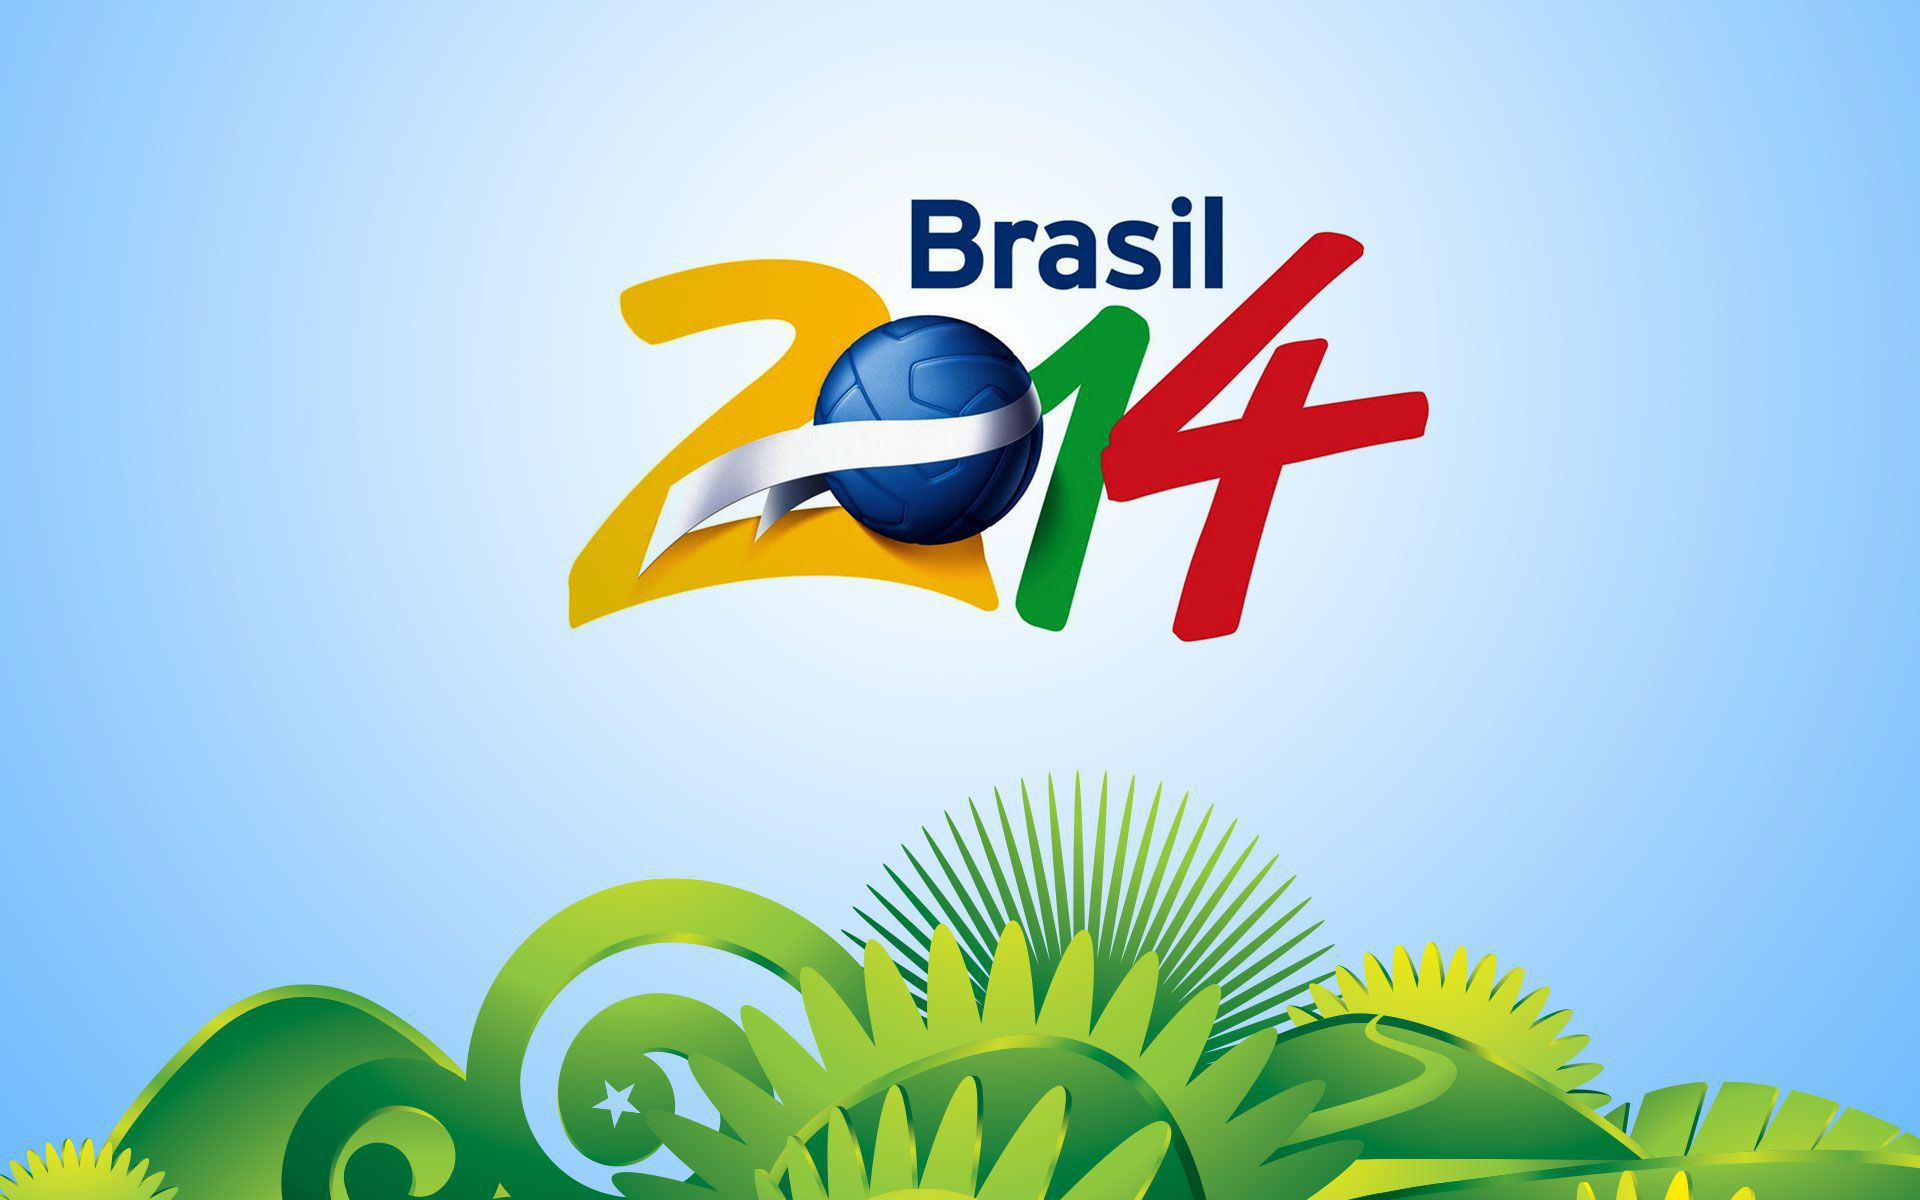 Brazil World Cup 2014 Photos